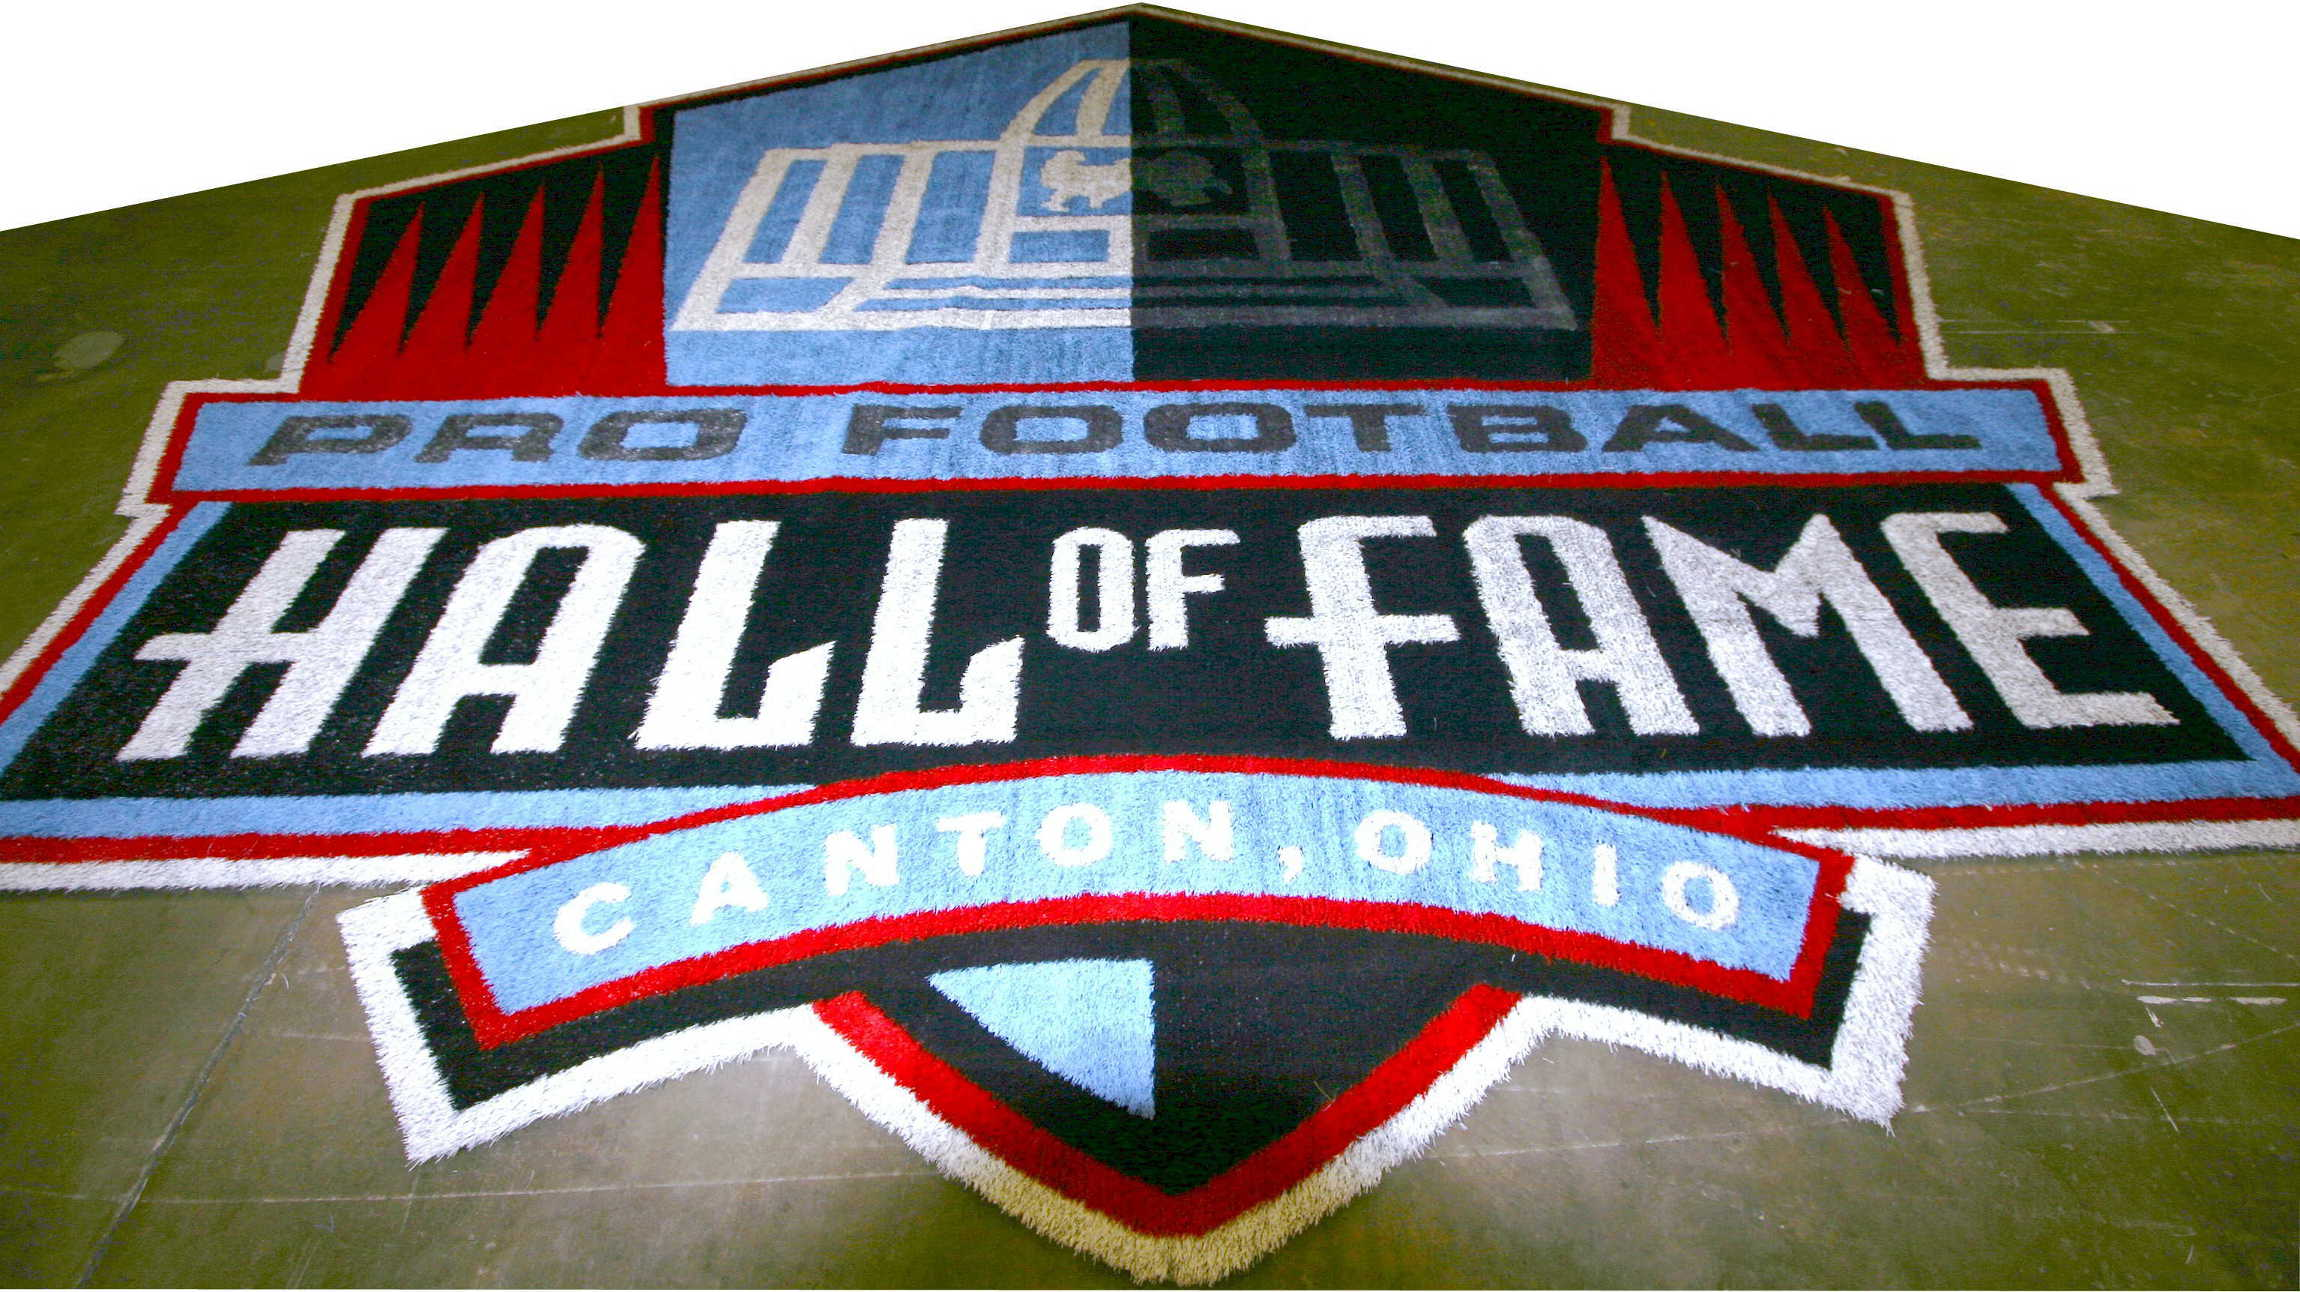 Hall of Fame weekend, inizia la stagione NFL